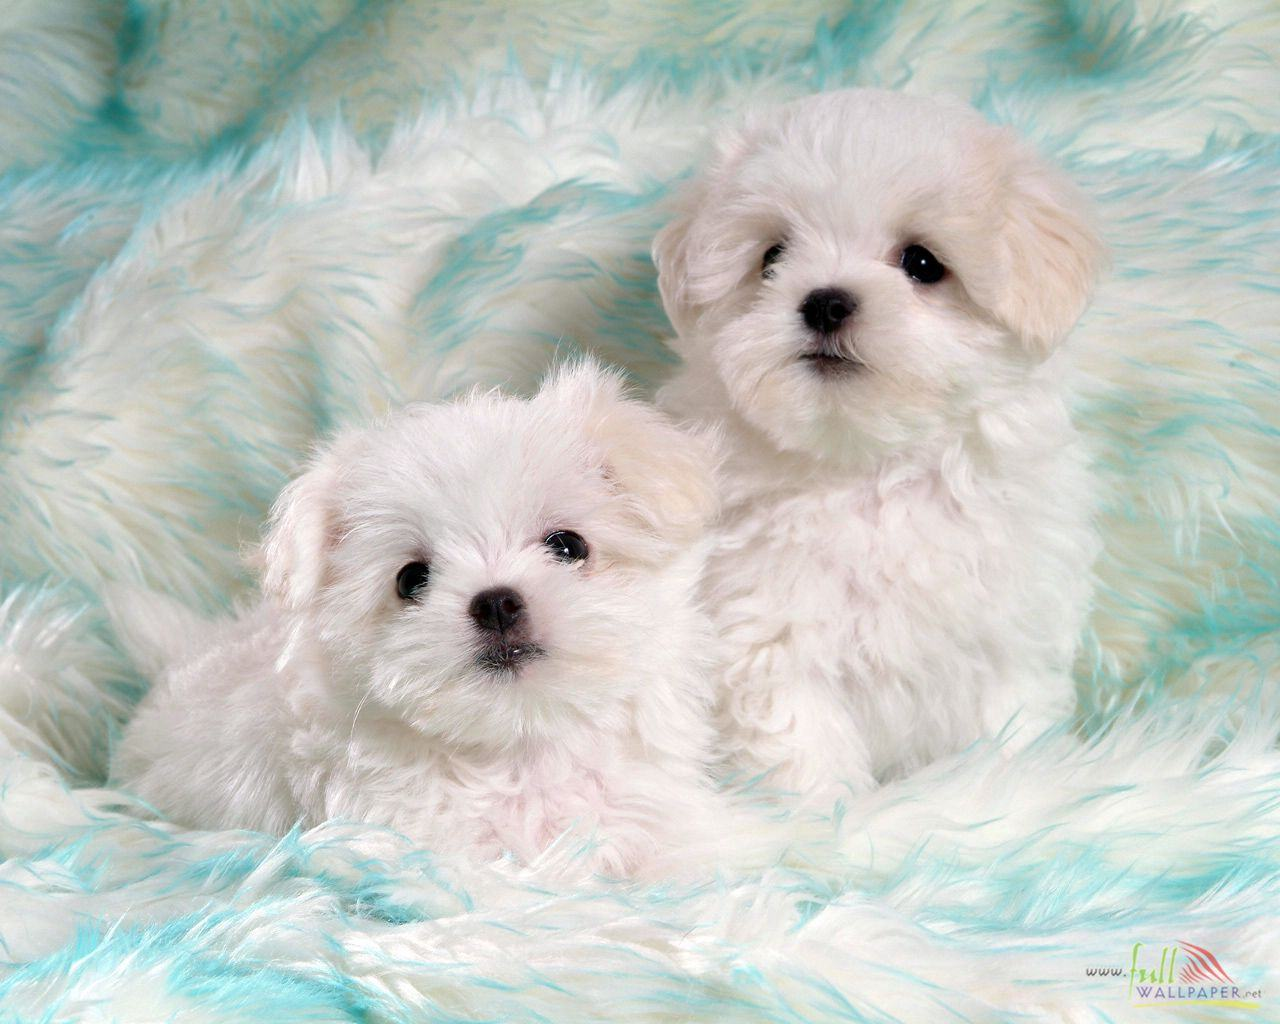 45 Baby Puppy Wallpaper On Wallpapersafari